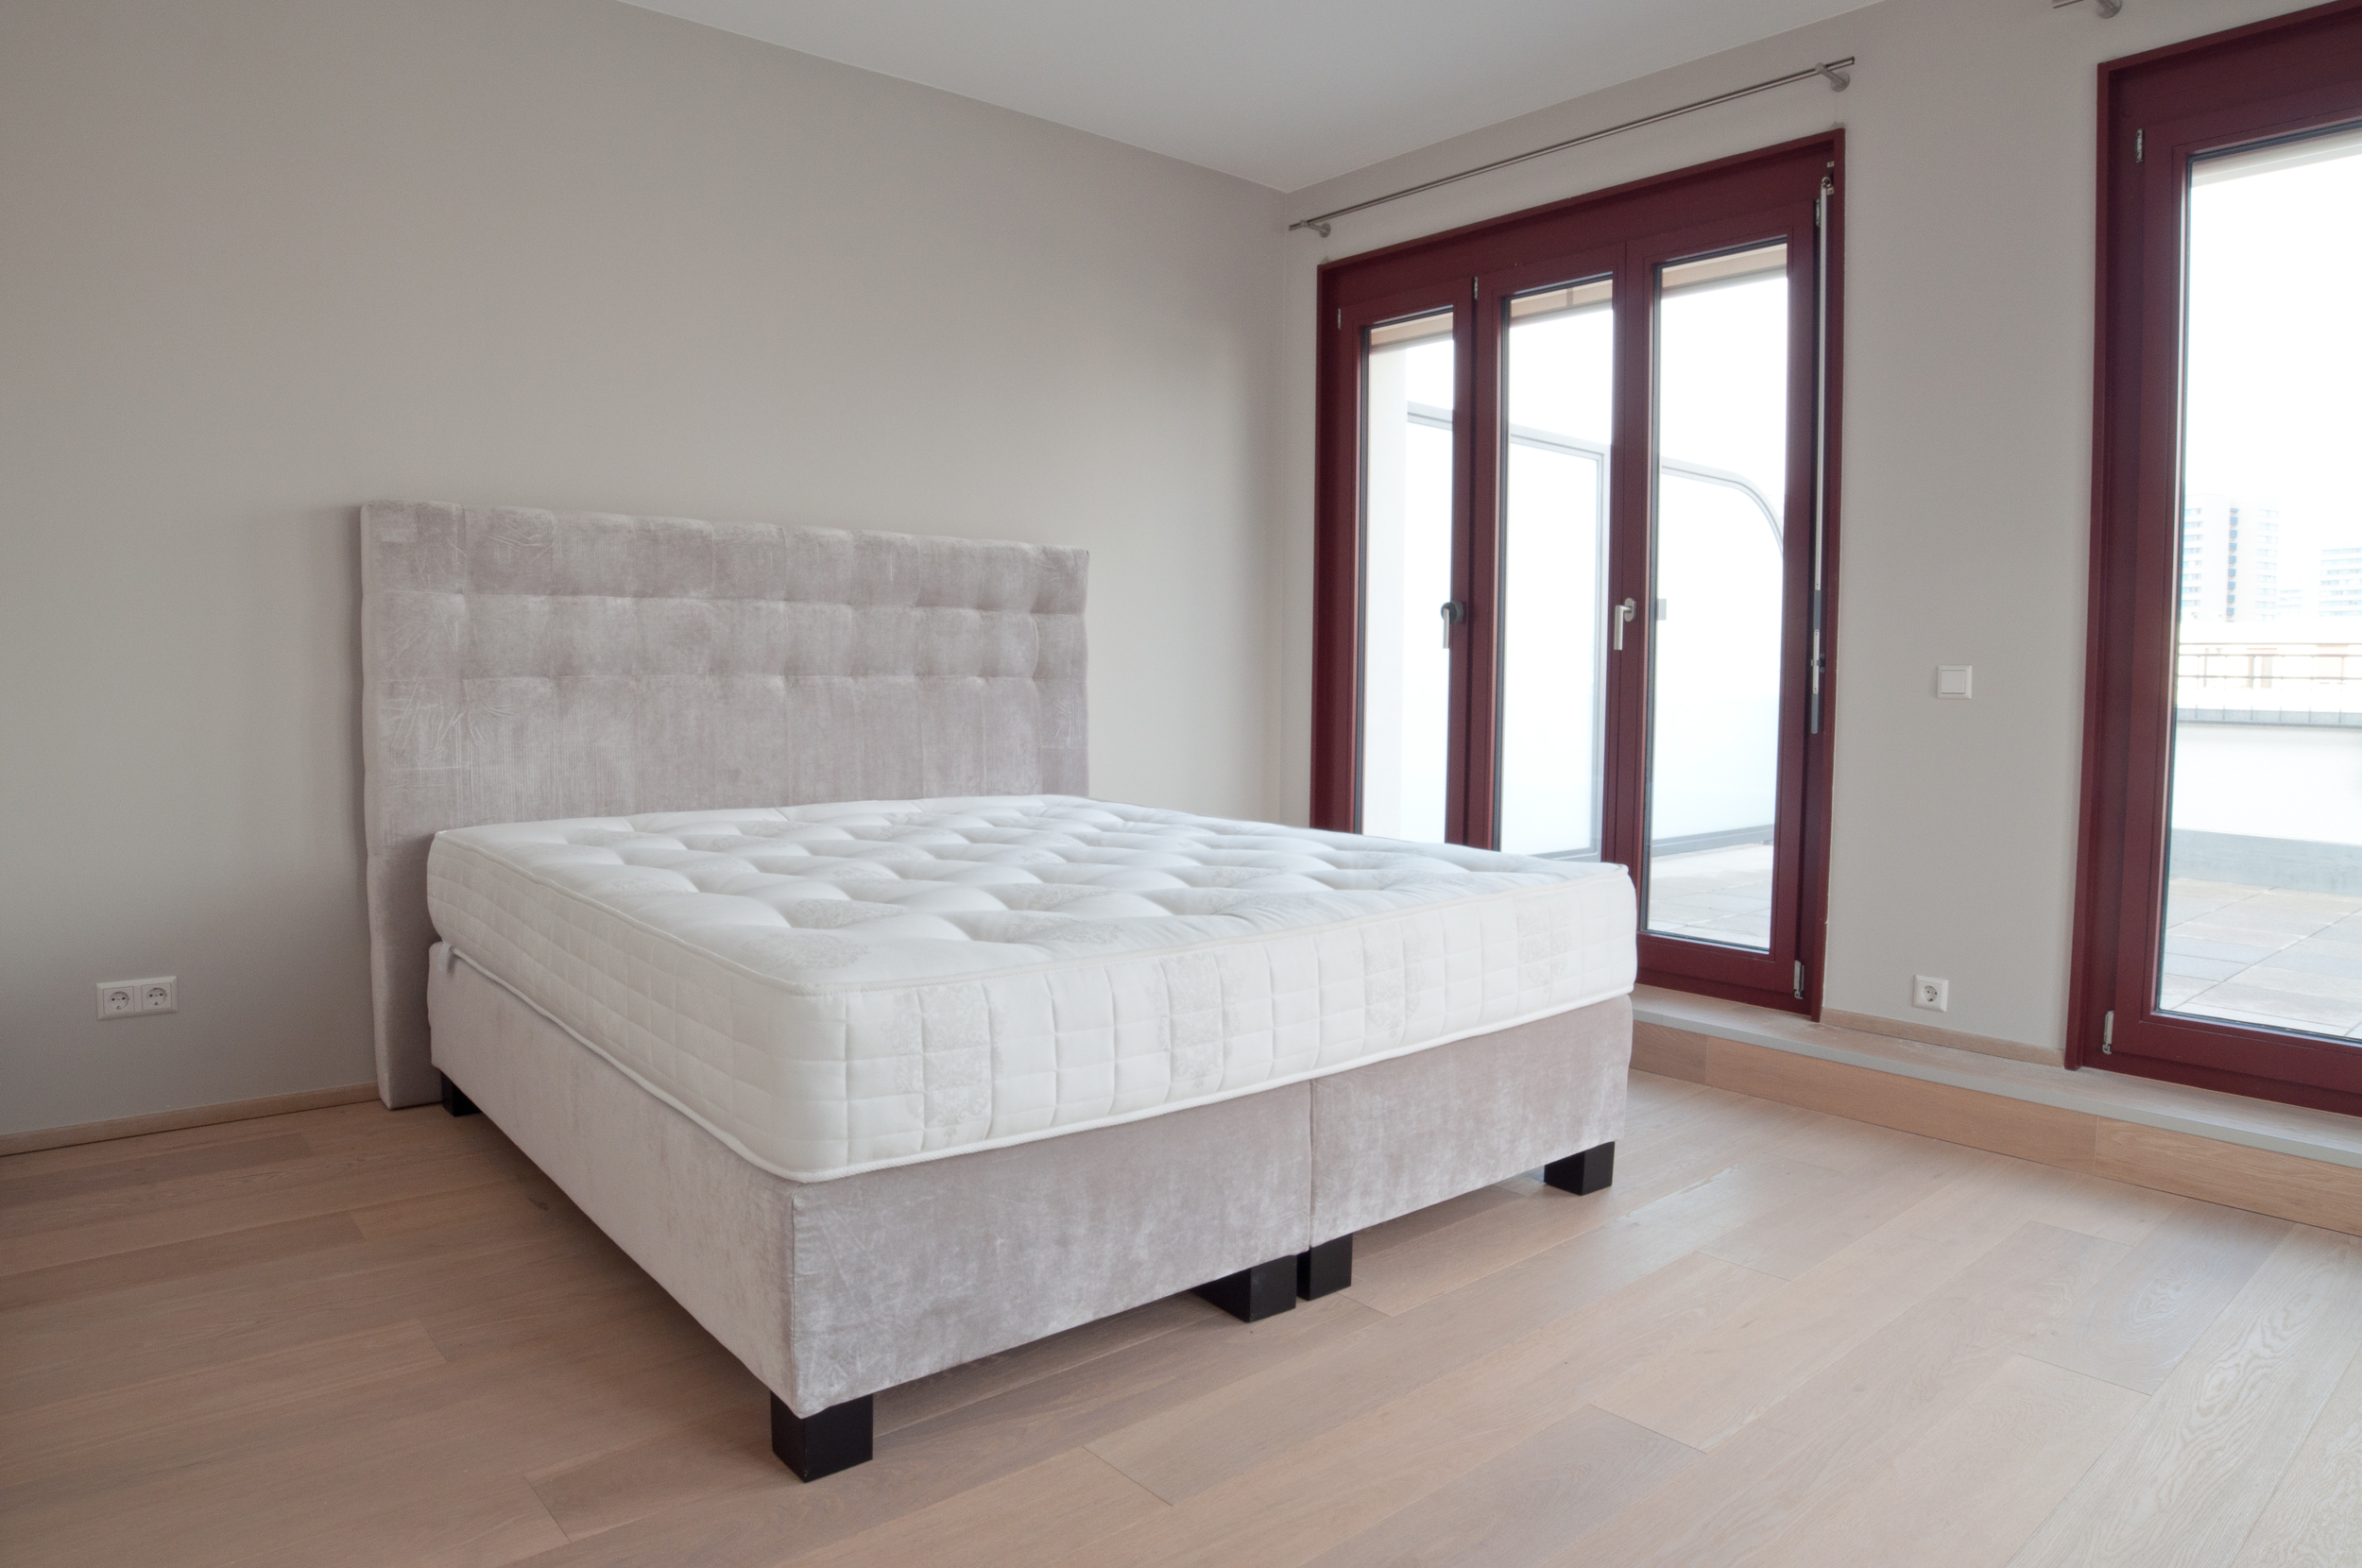 re-vamp_homestaging_musterwohnung_penthouse_6.jpg